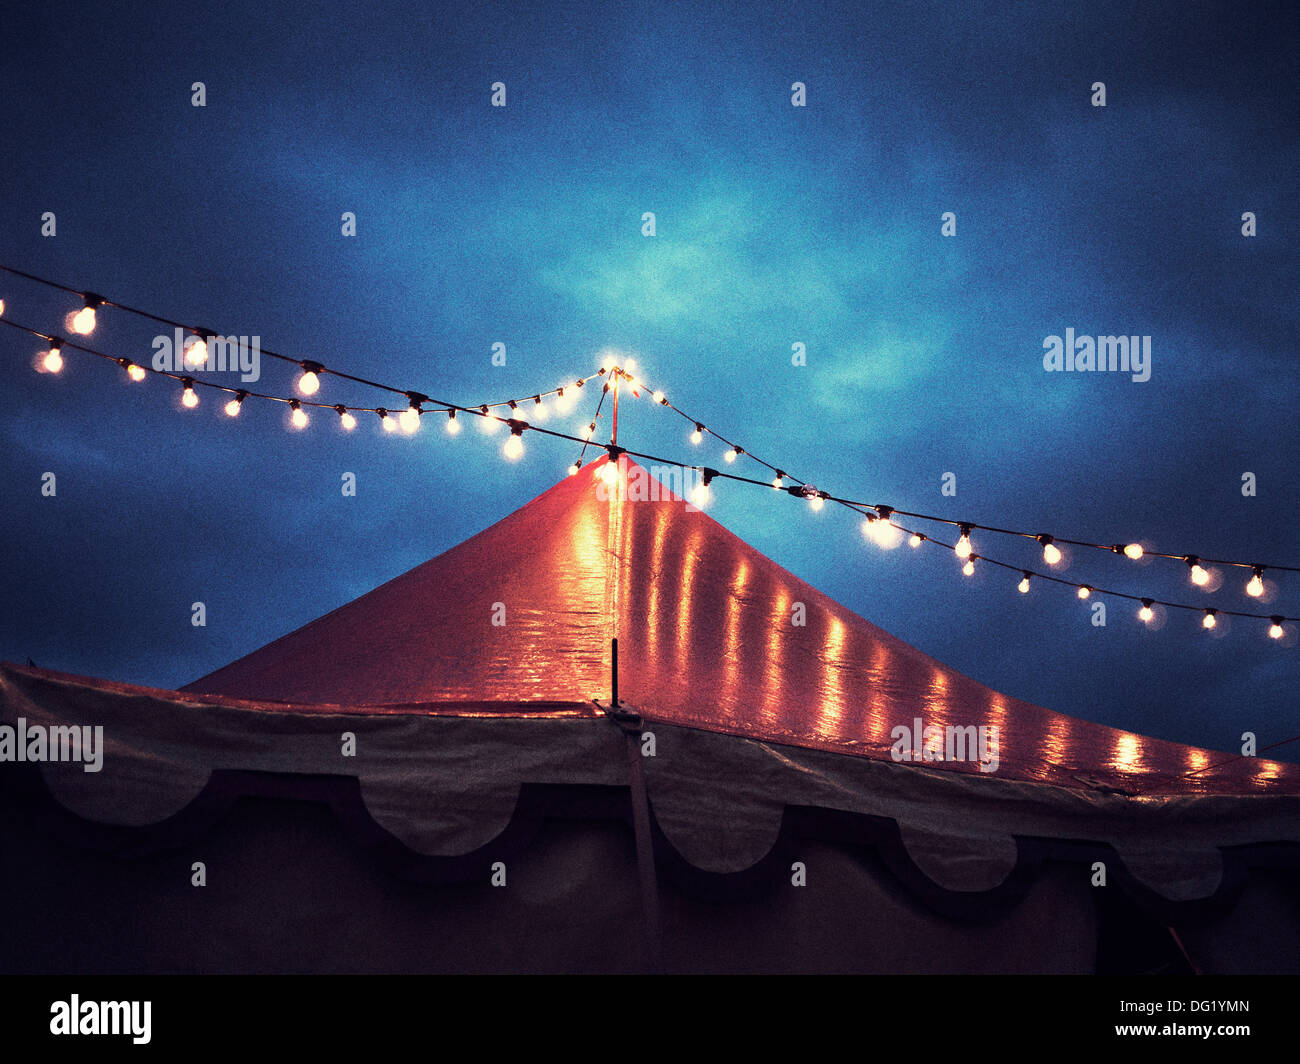 Circus Tent and String of Lights at Night, Low Angle View - Stock Image